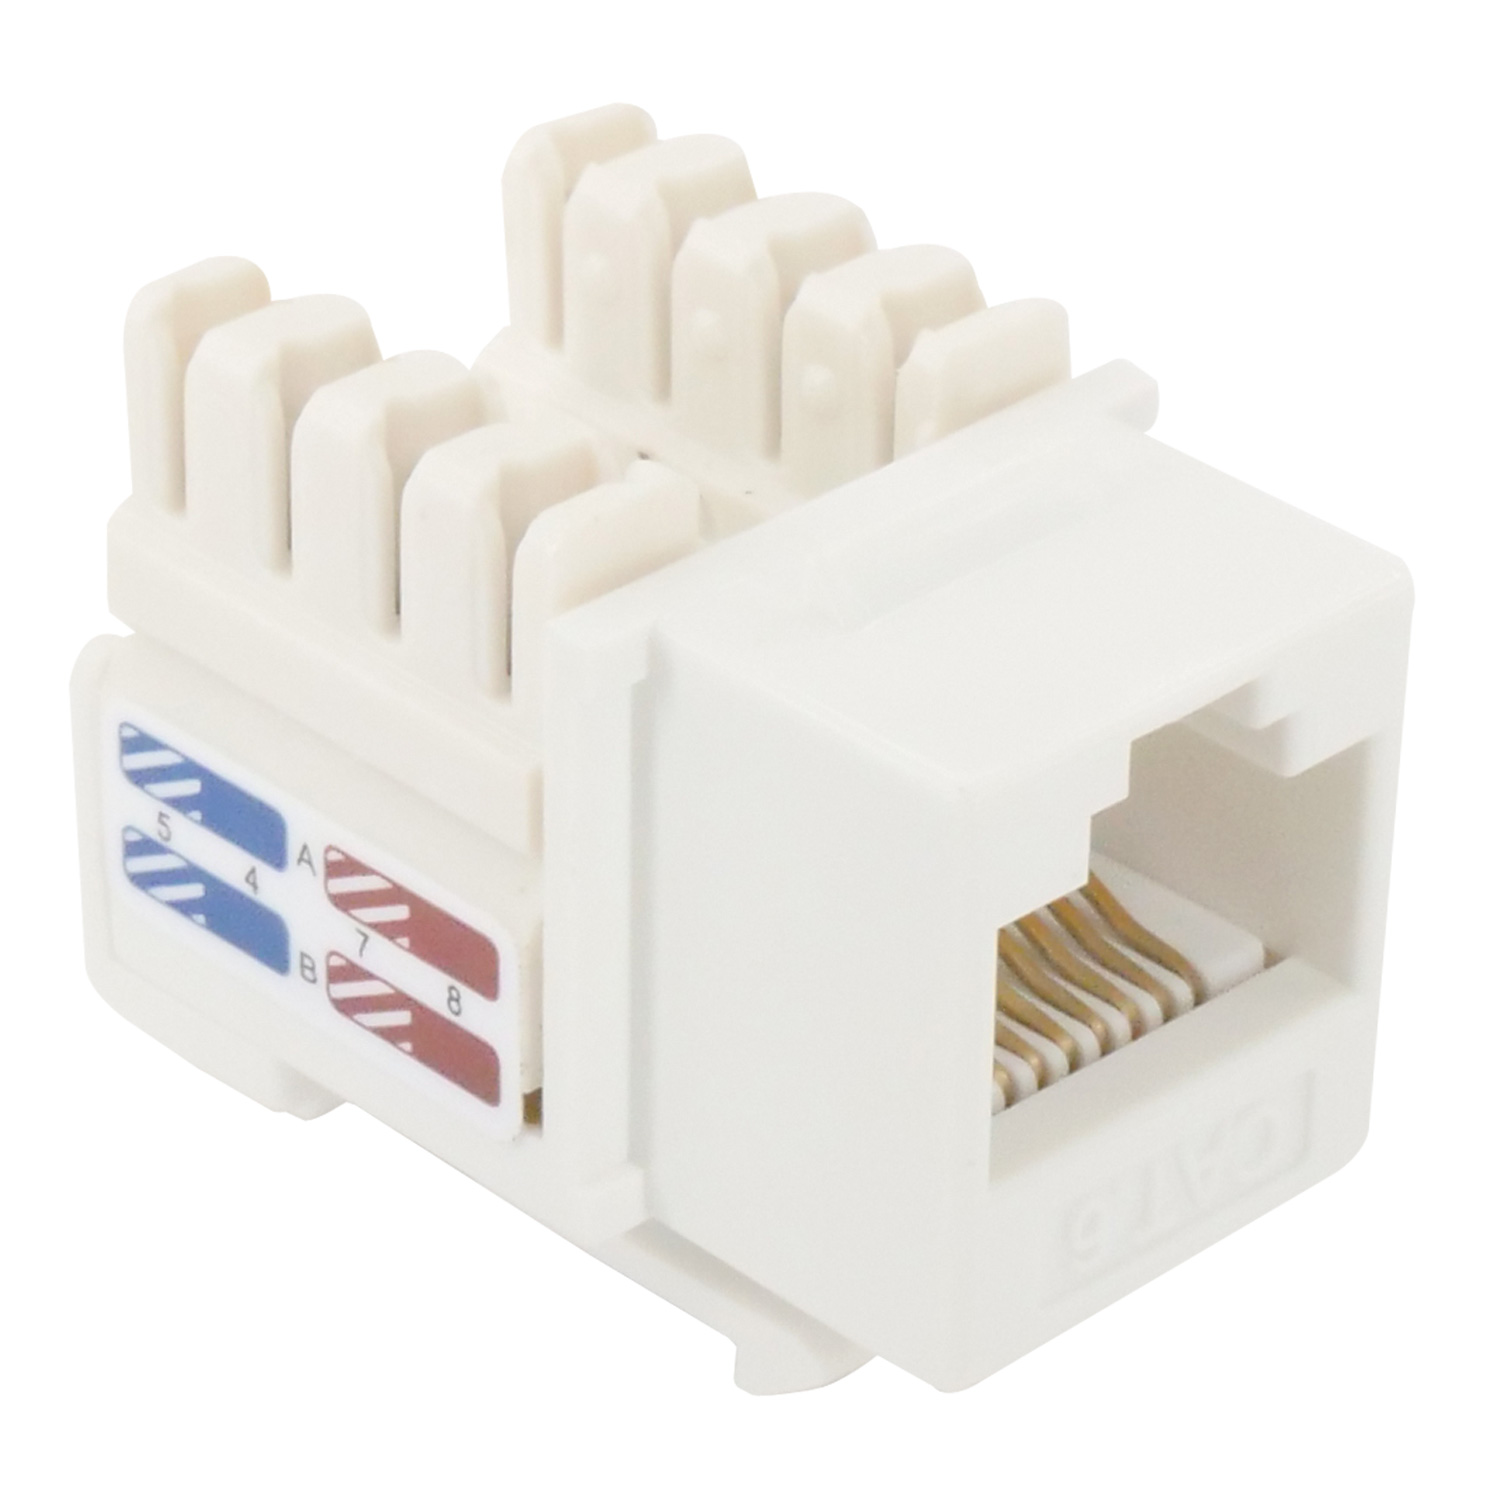 Jack Wiring Diagram Cable How To Connect Cat6 Plug Cat6 Keystone Jack